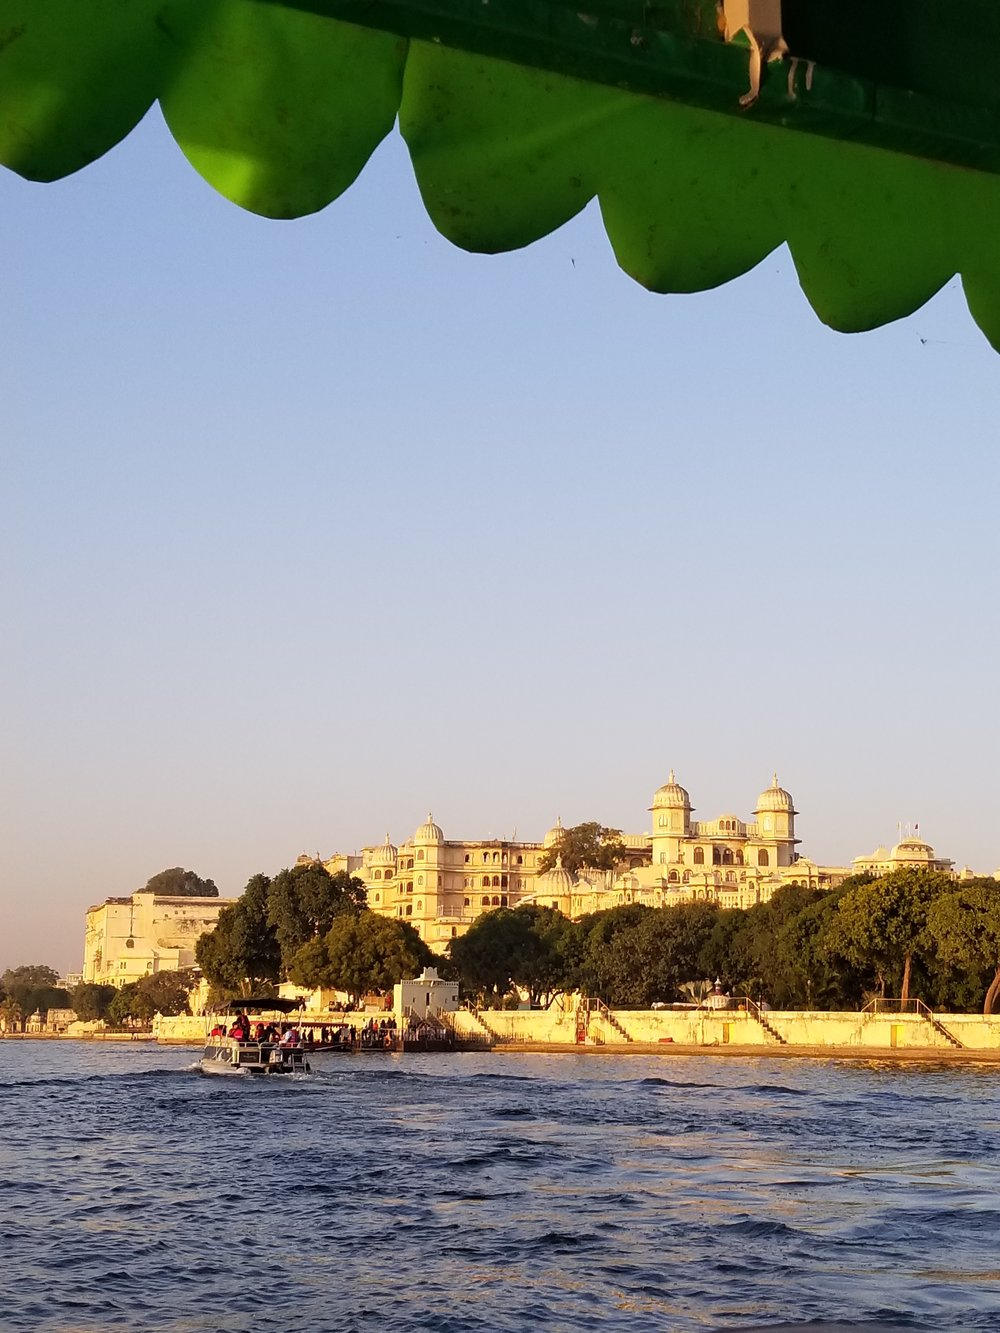 City Palace view from boat